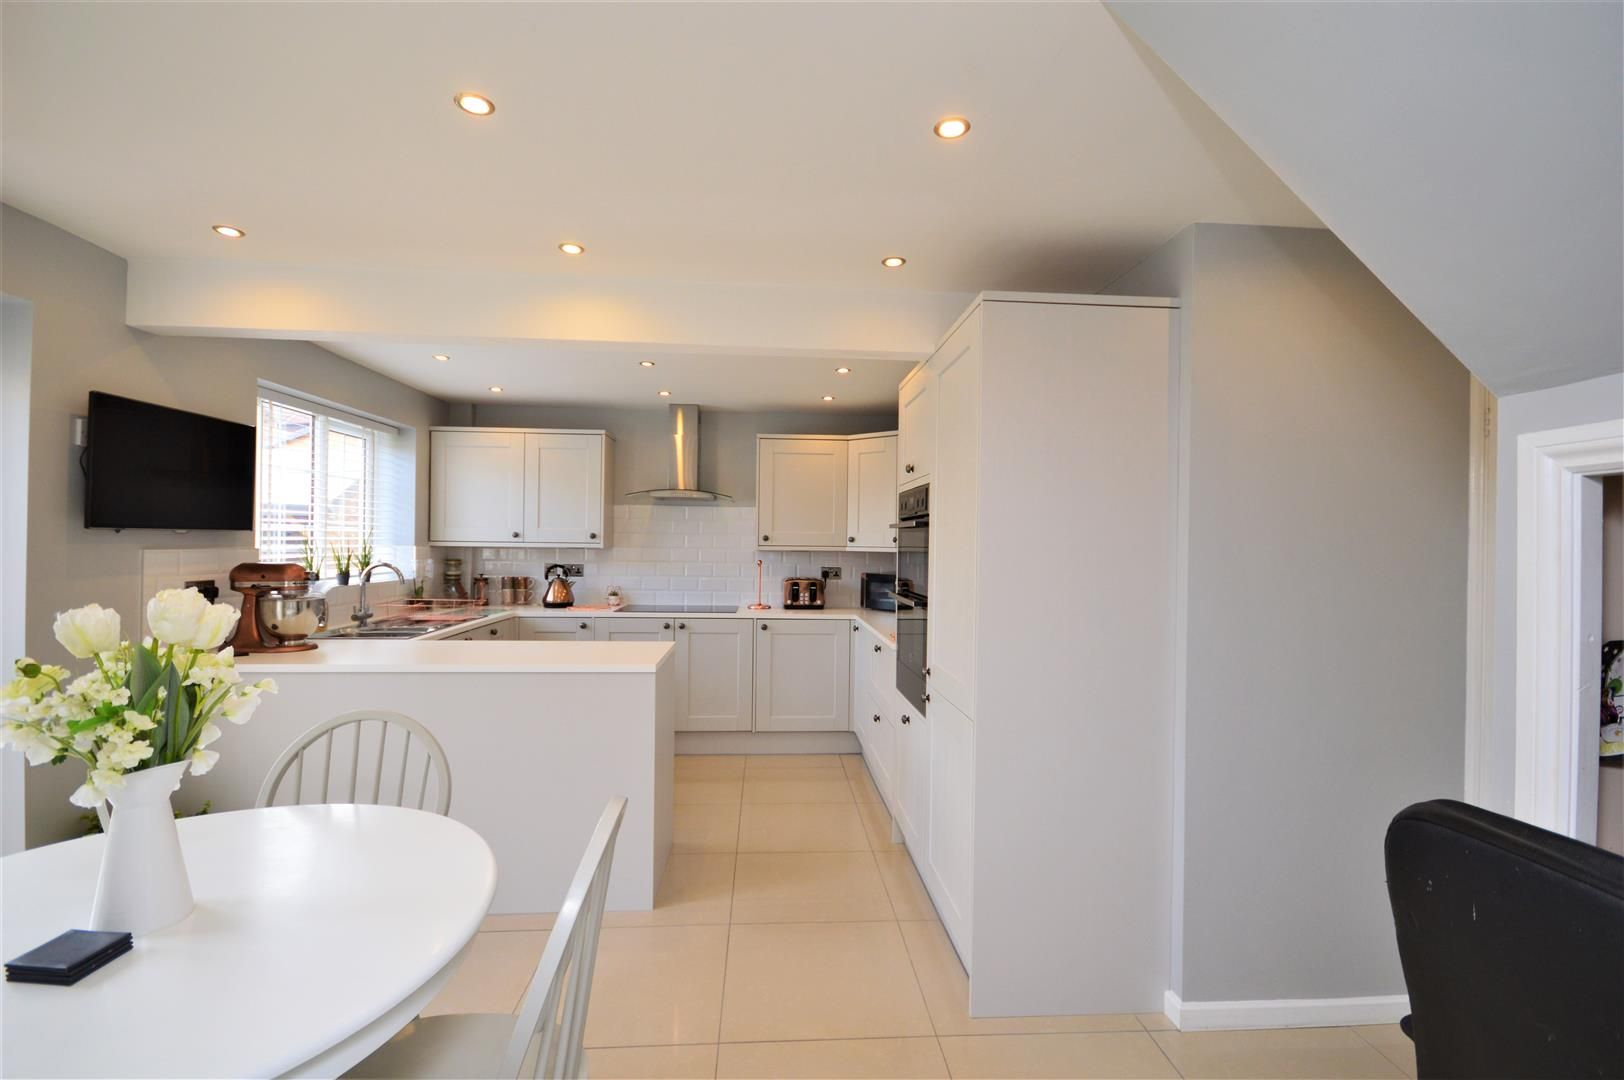 3 bed detached for sale in Belmont 2